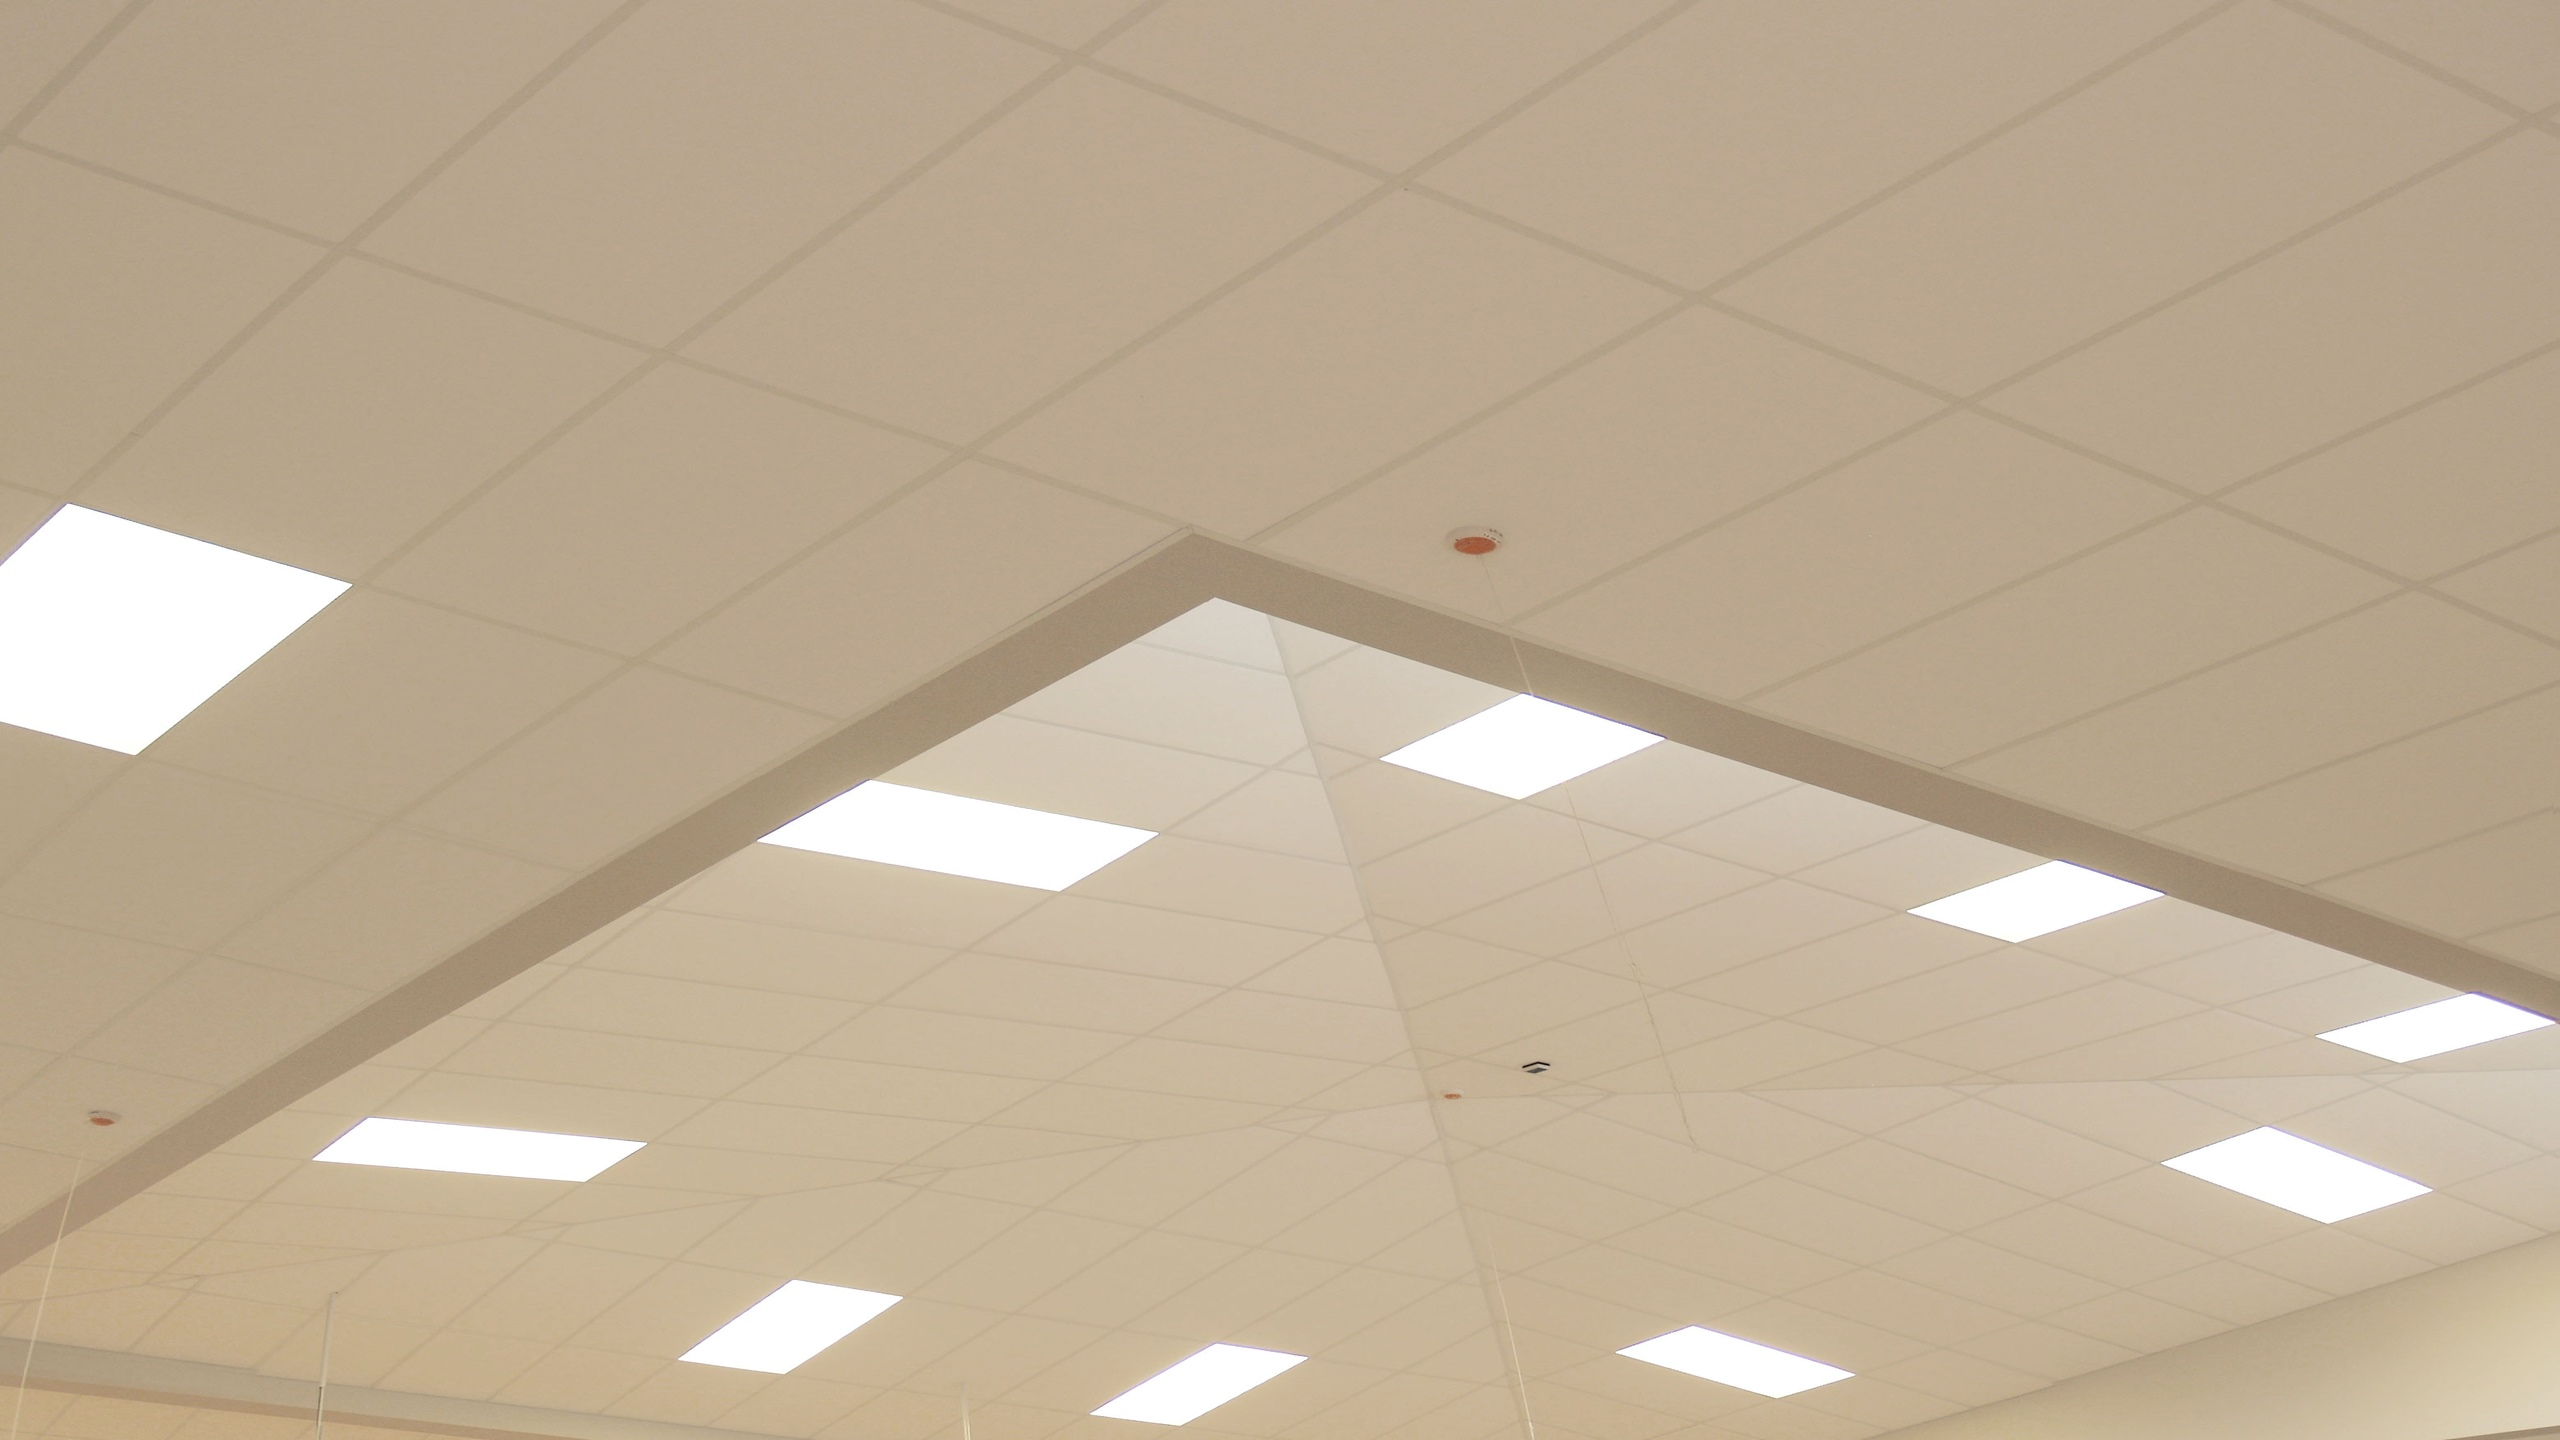 Balmoral School Auditorium showing detail of Diffusion in conjunction with Classroom 60/40 ceiling panels